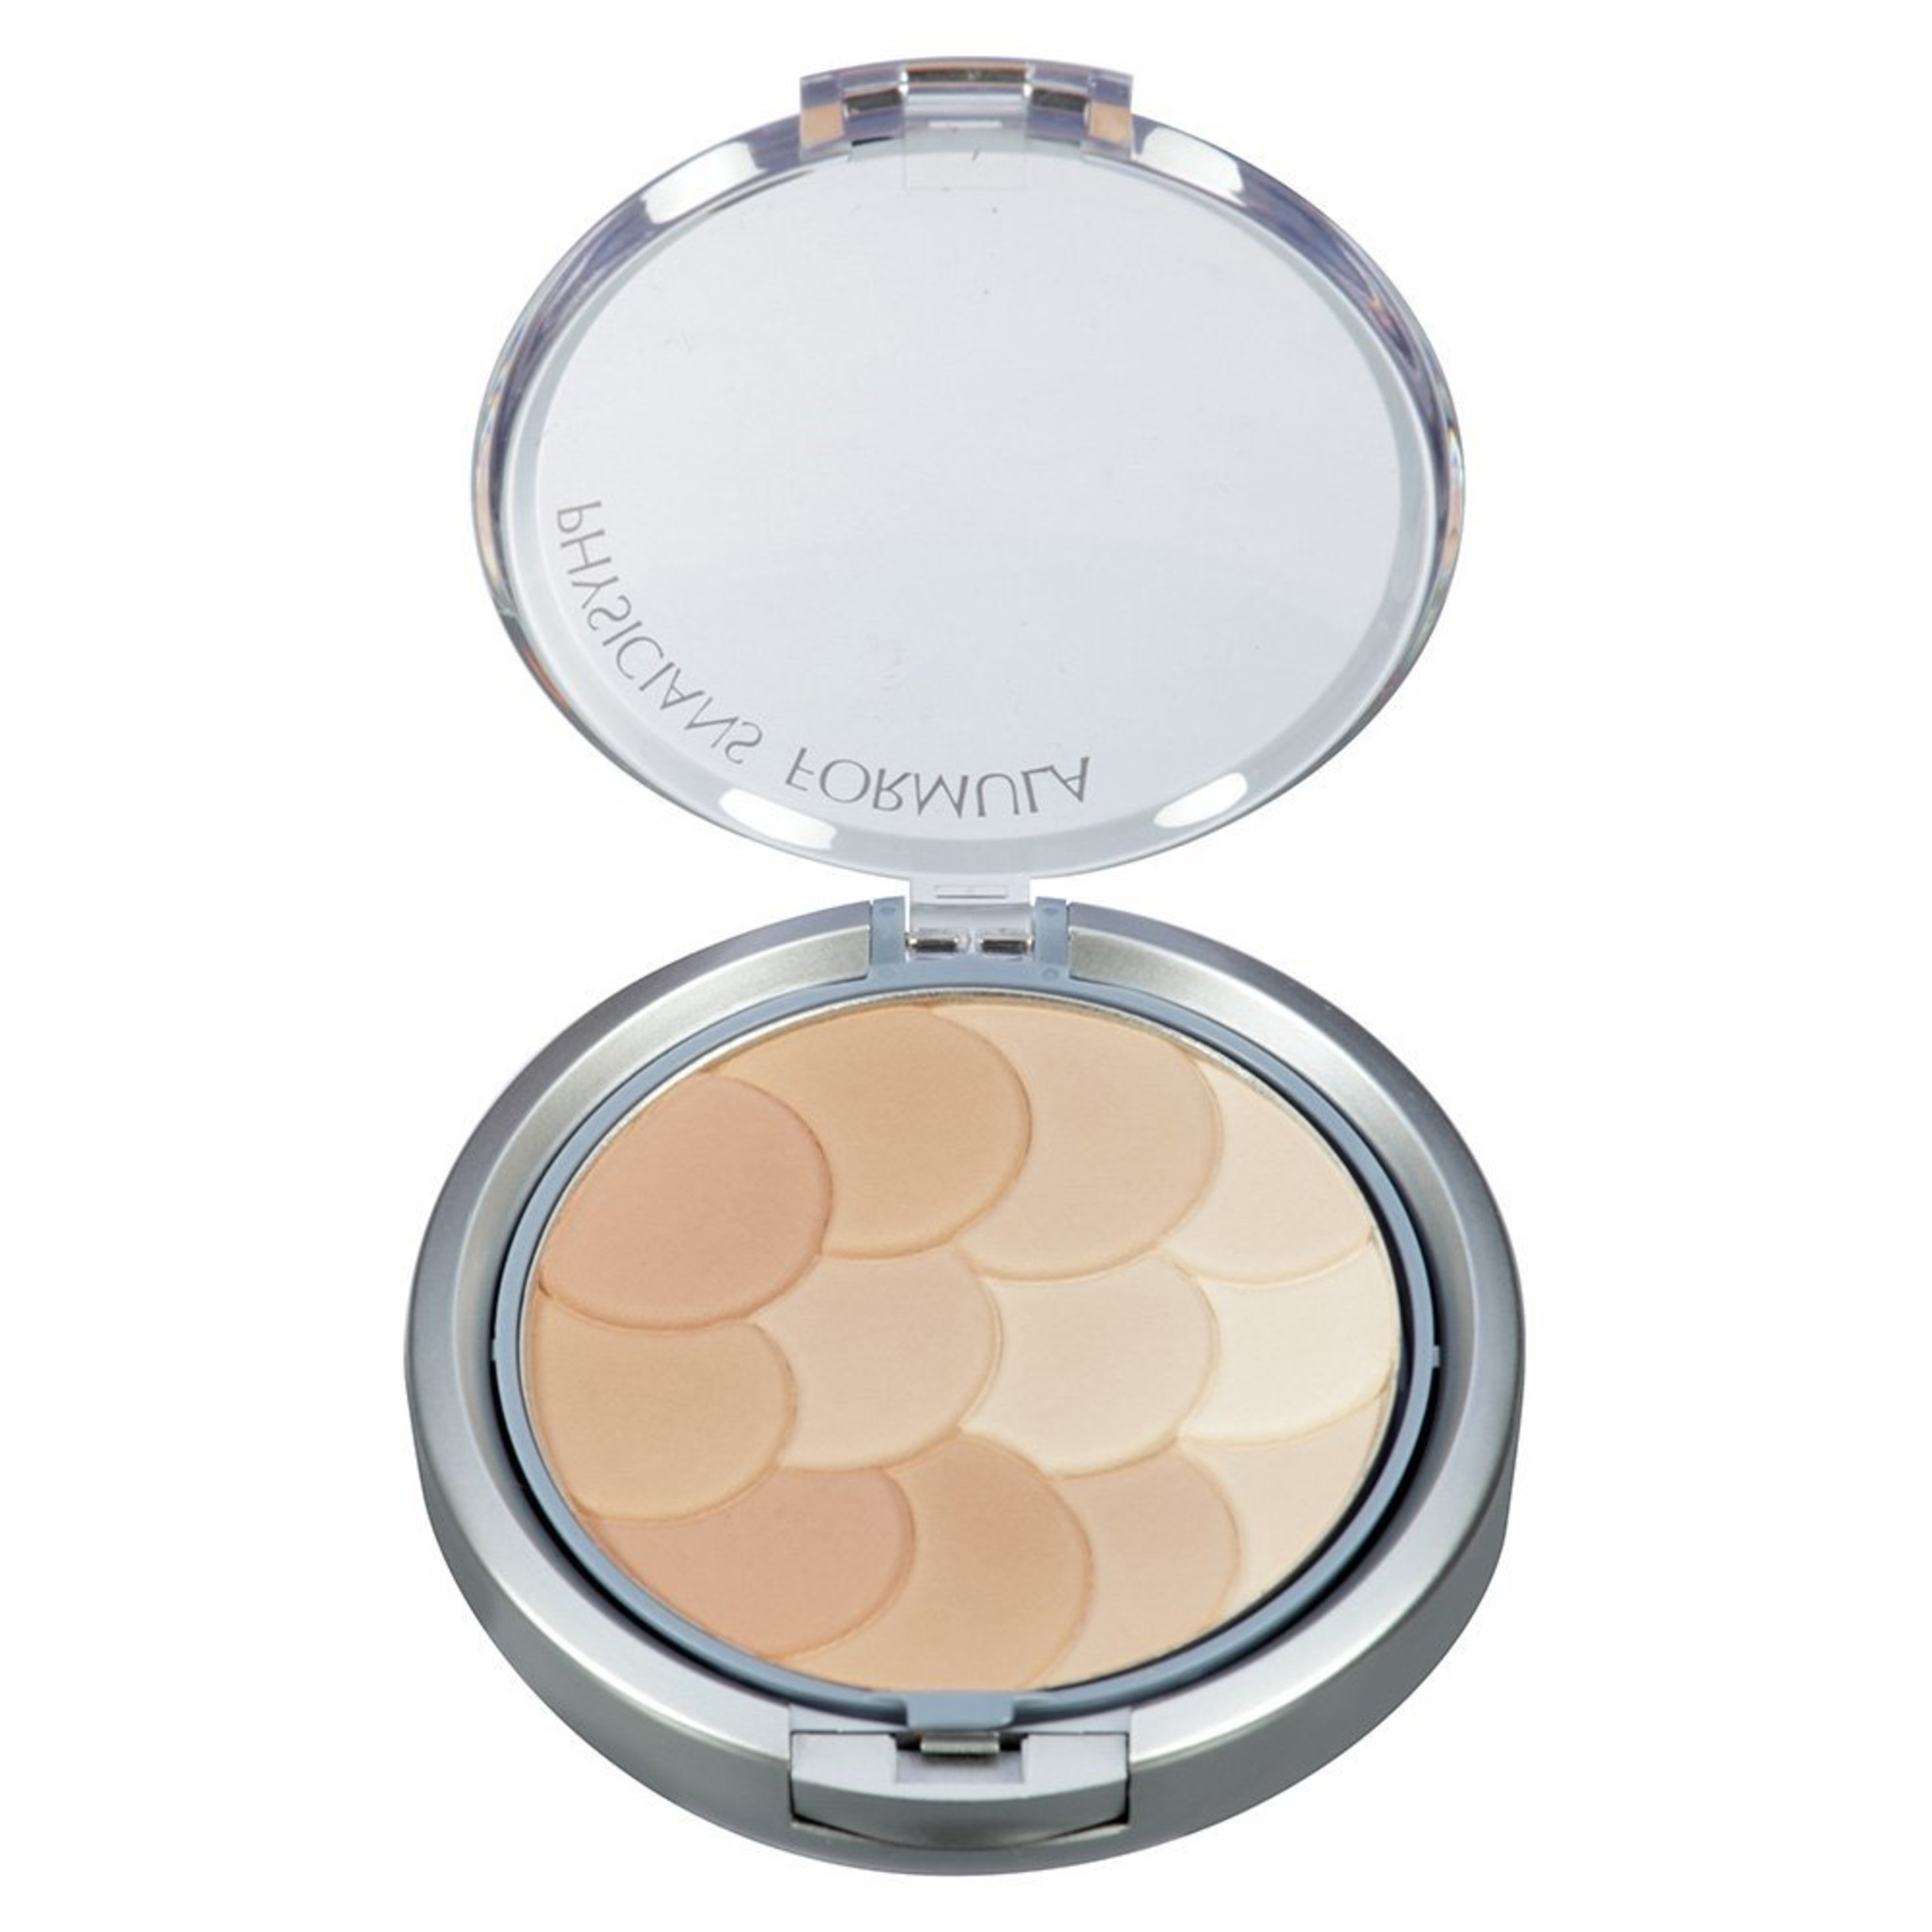 Physicians Formula Magic Mosaic® Multi-Colored Custom Face Powder, Beige/Warm Beige